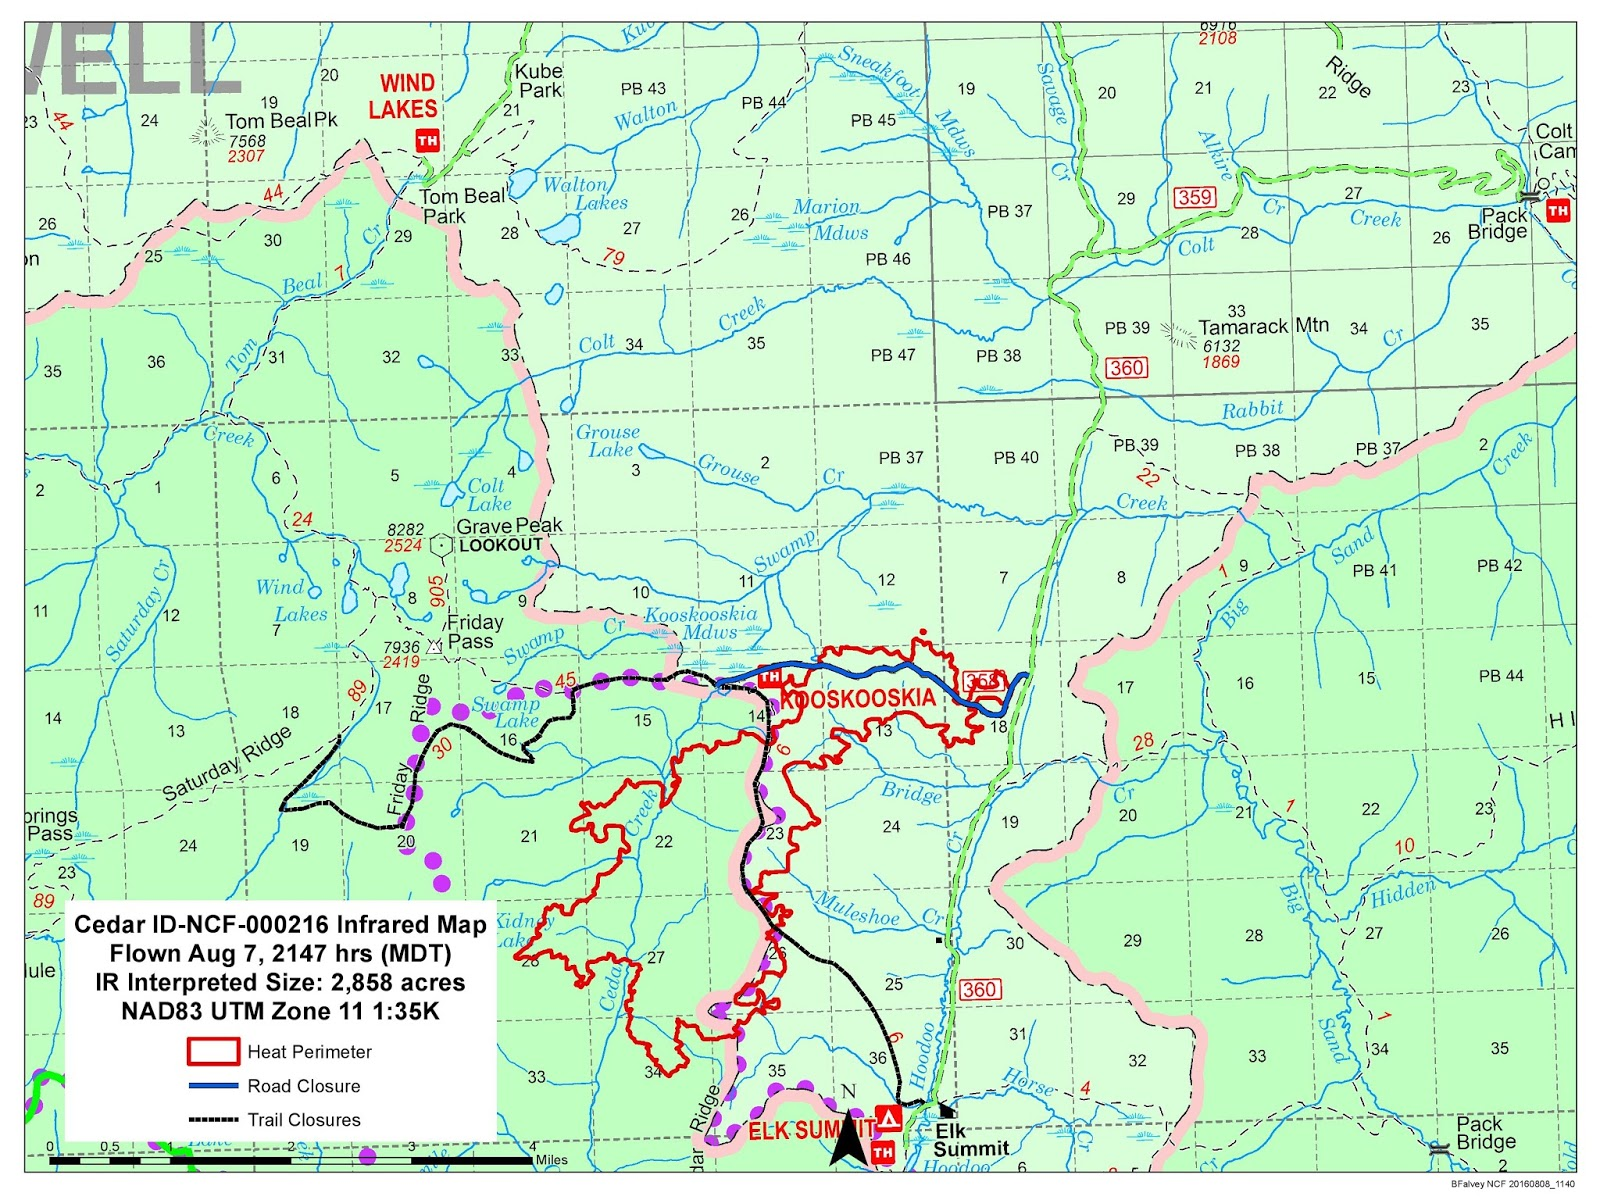 Idaho Fire Information Weekend Weather Slows Fire Activity On - Cedar fire map